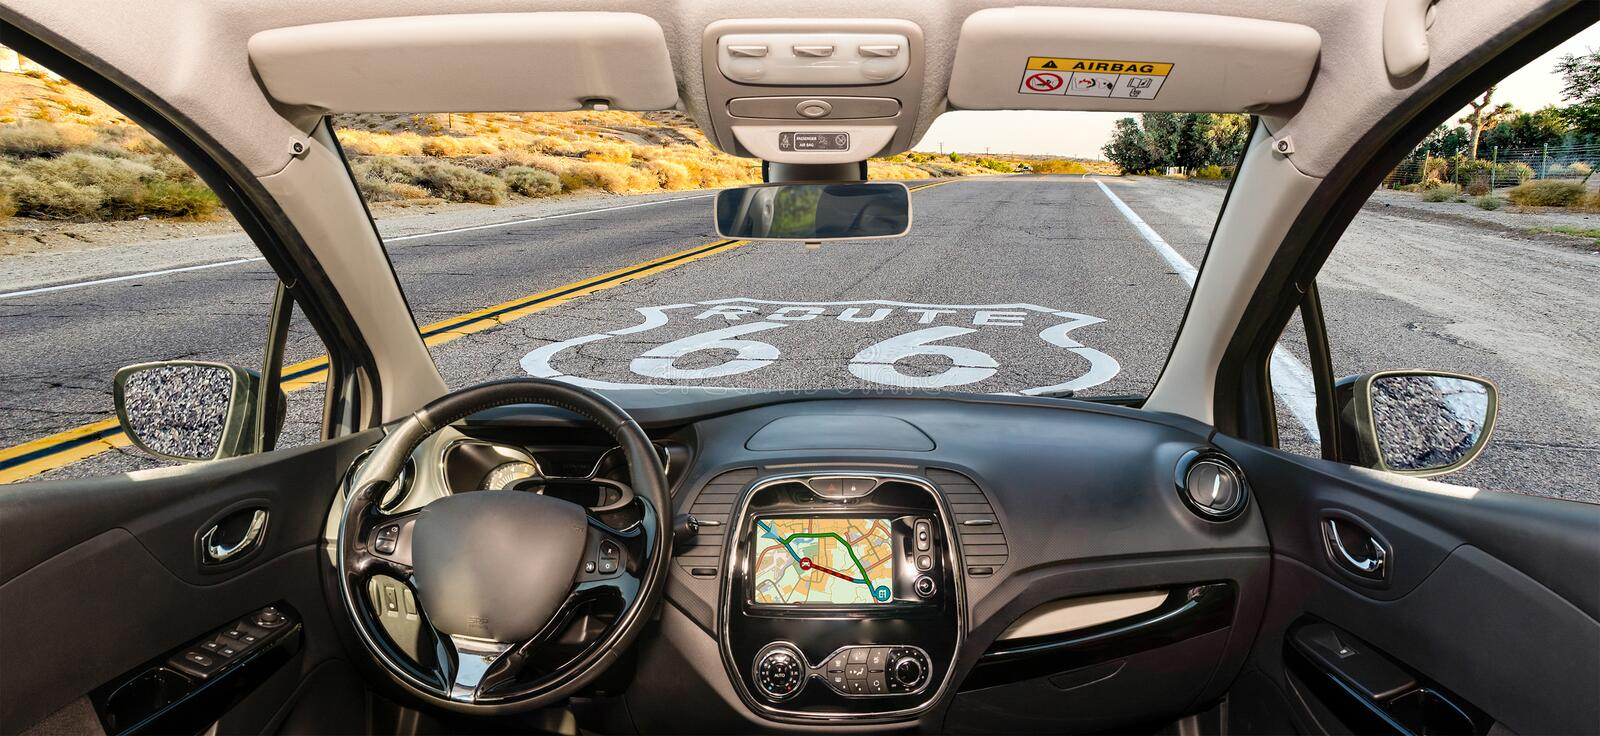 Car windshield with Historic Route 66 sign in California, USA. Looking through a car windshield with view over the Historic Route 66 and pavement sign in stock photography